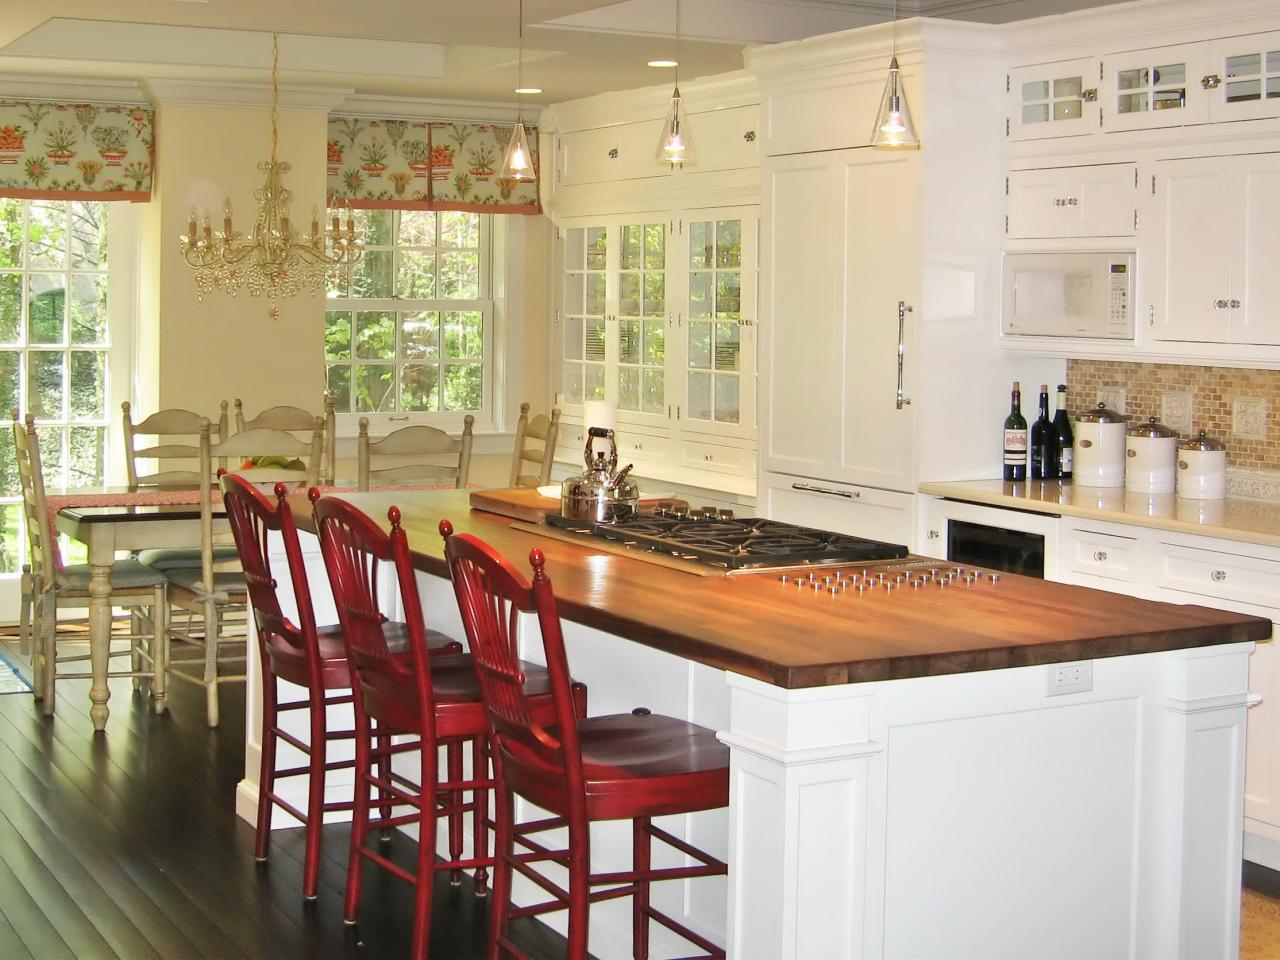 Light Fixtures For Kitchen On Kitchen Galley Kitchen Lighting Ideas Pictures & Ideas From Hgtv  Hgtv